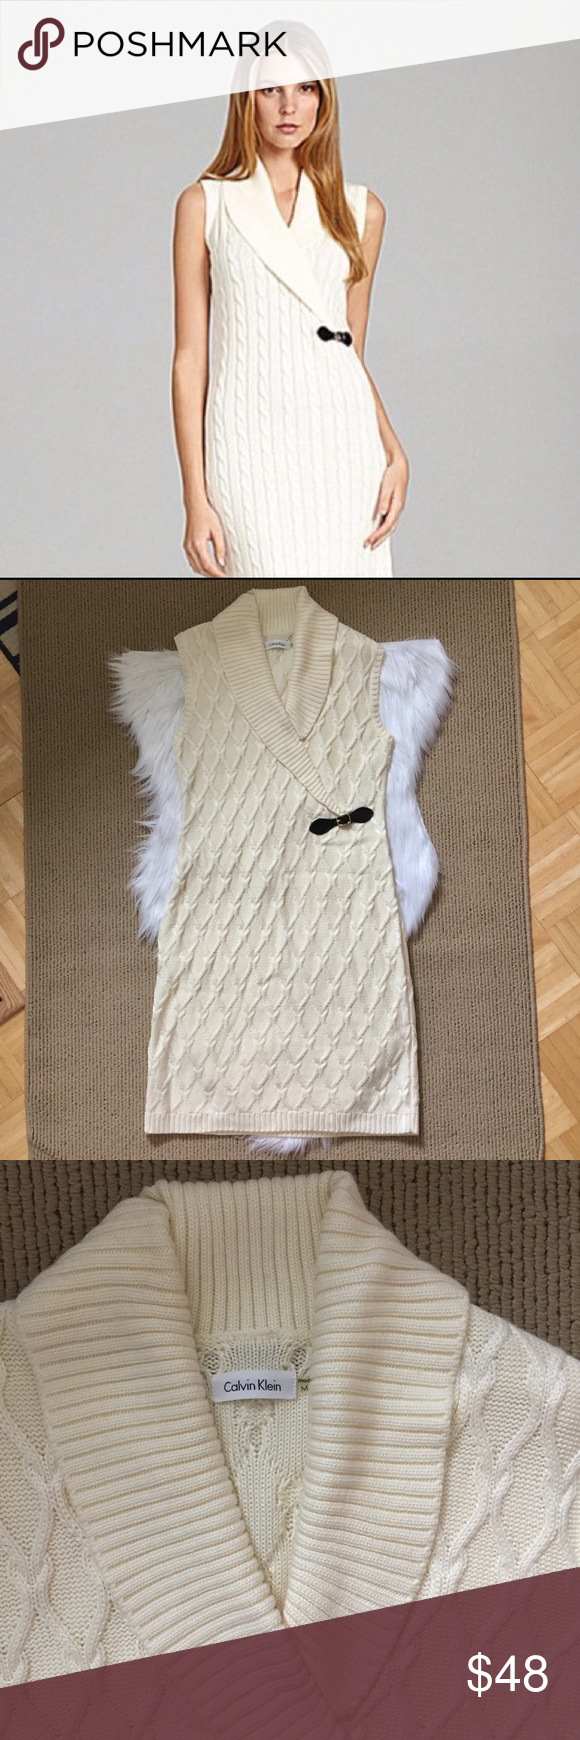 Calvin Klein Cable Knit Sweaterdress New With No Tags Never Worn